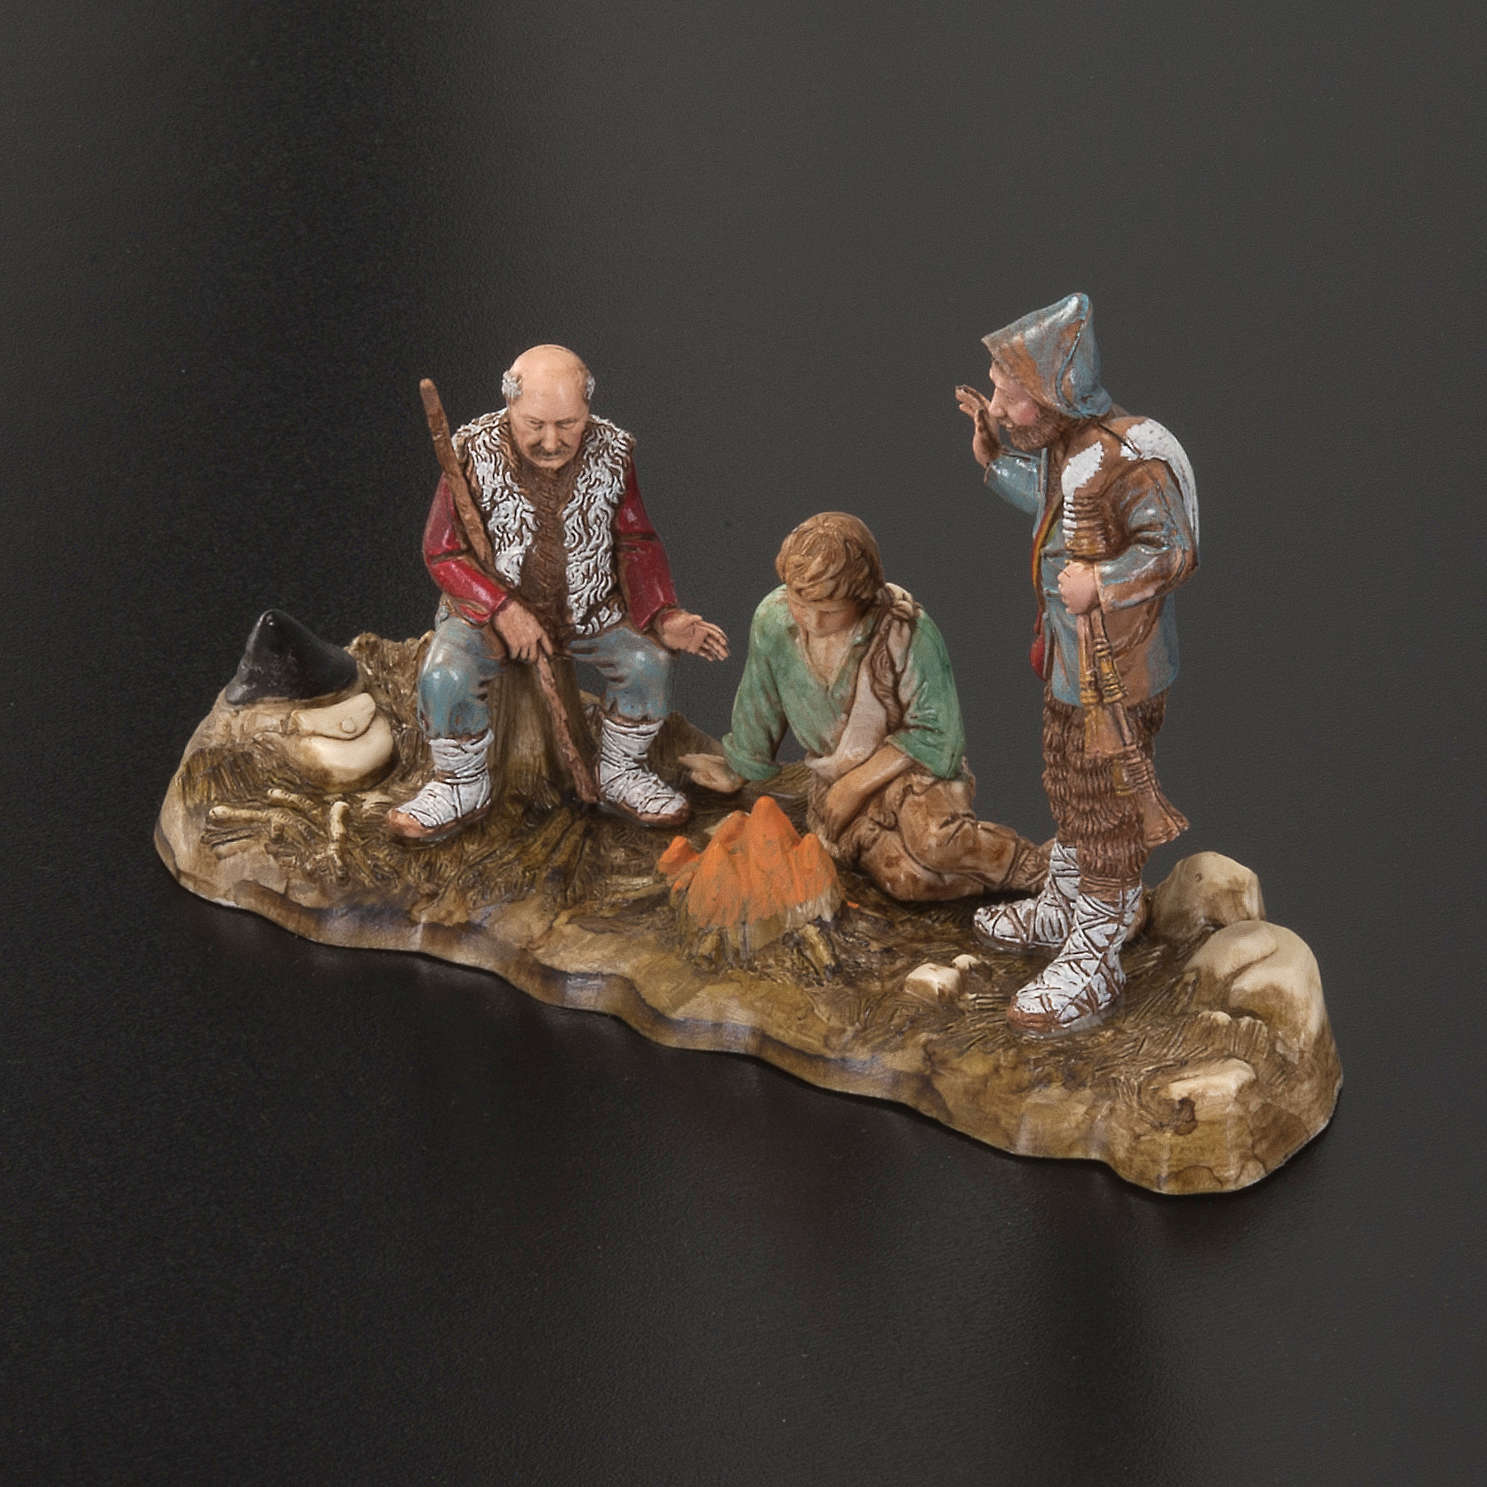 Setting for Moranduzzo nativities, 3 shepherds with fire 10cm 3